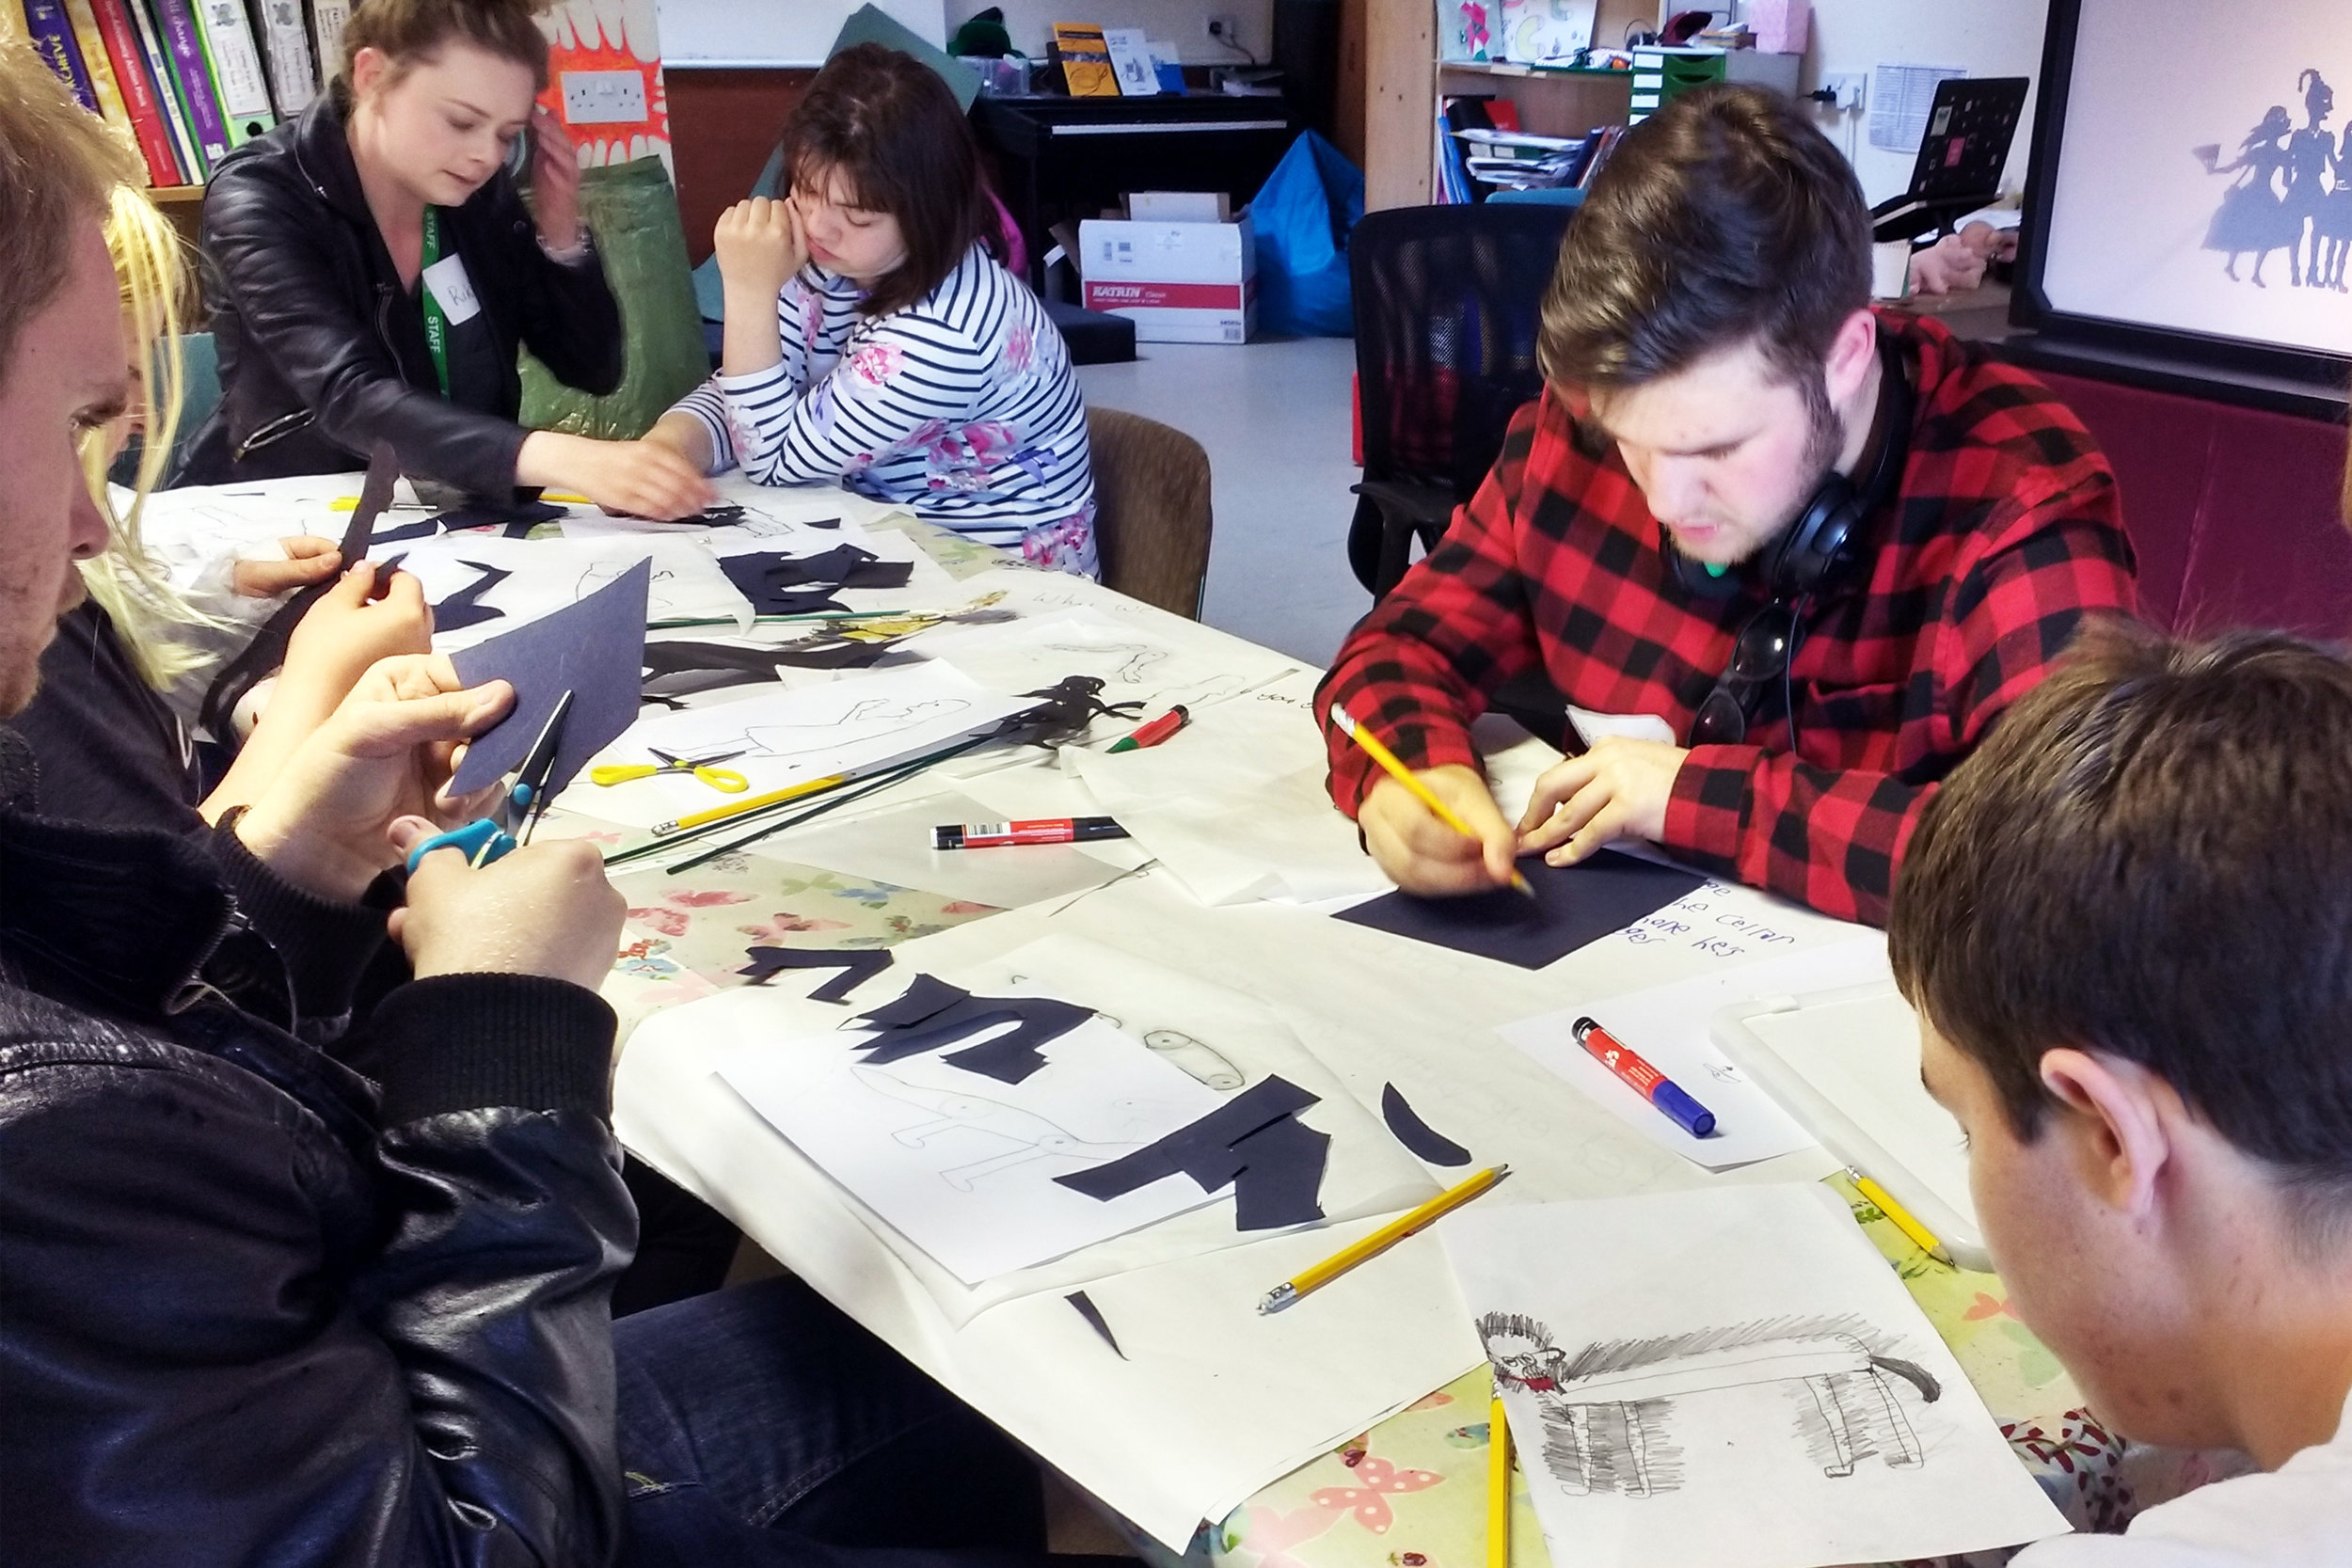 Special needs students designing & making shadow puppets